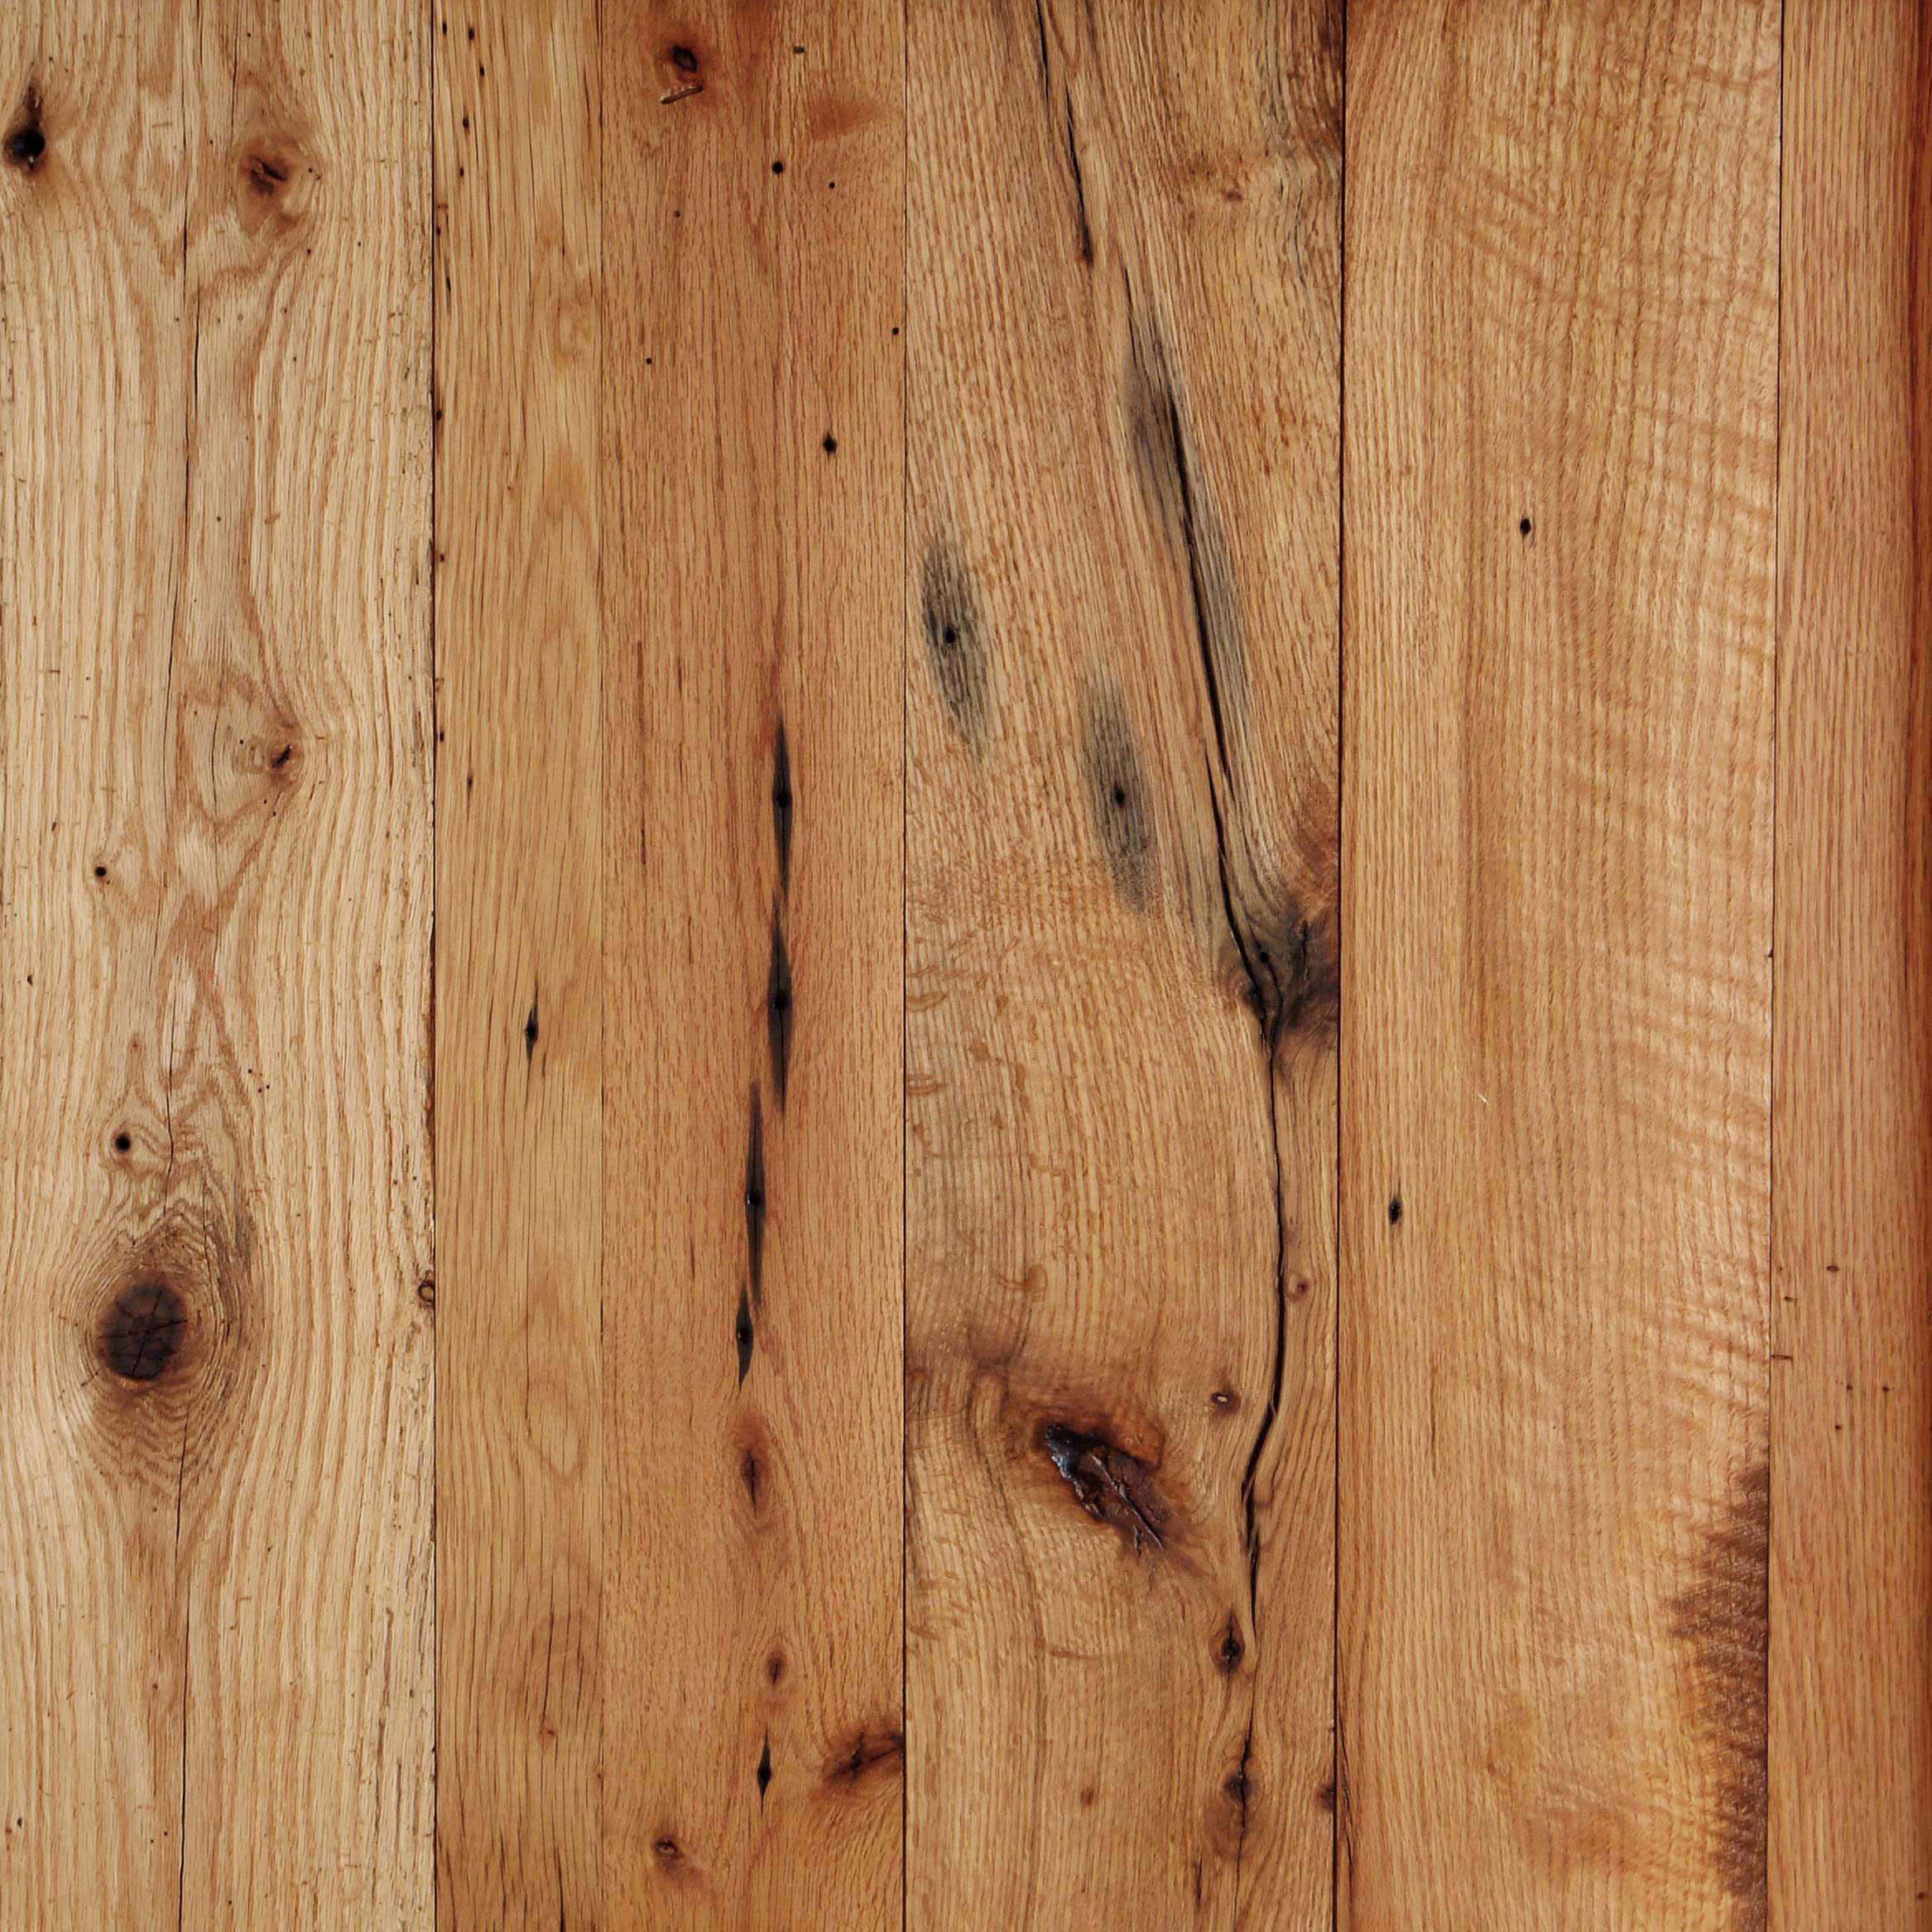 20 Amazing 1.5 Oak Hardwood Flooring 2021 free download 1 5 oak hardwood flooring of longleaf lumber reclaimed red white oak wood for reclaimed salvaged antique red oak flooring wide boards knots